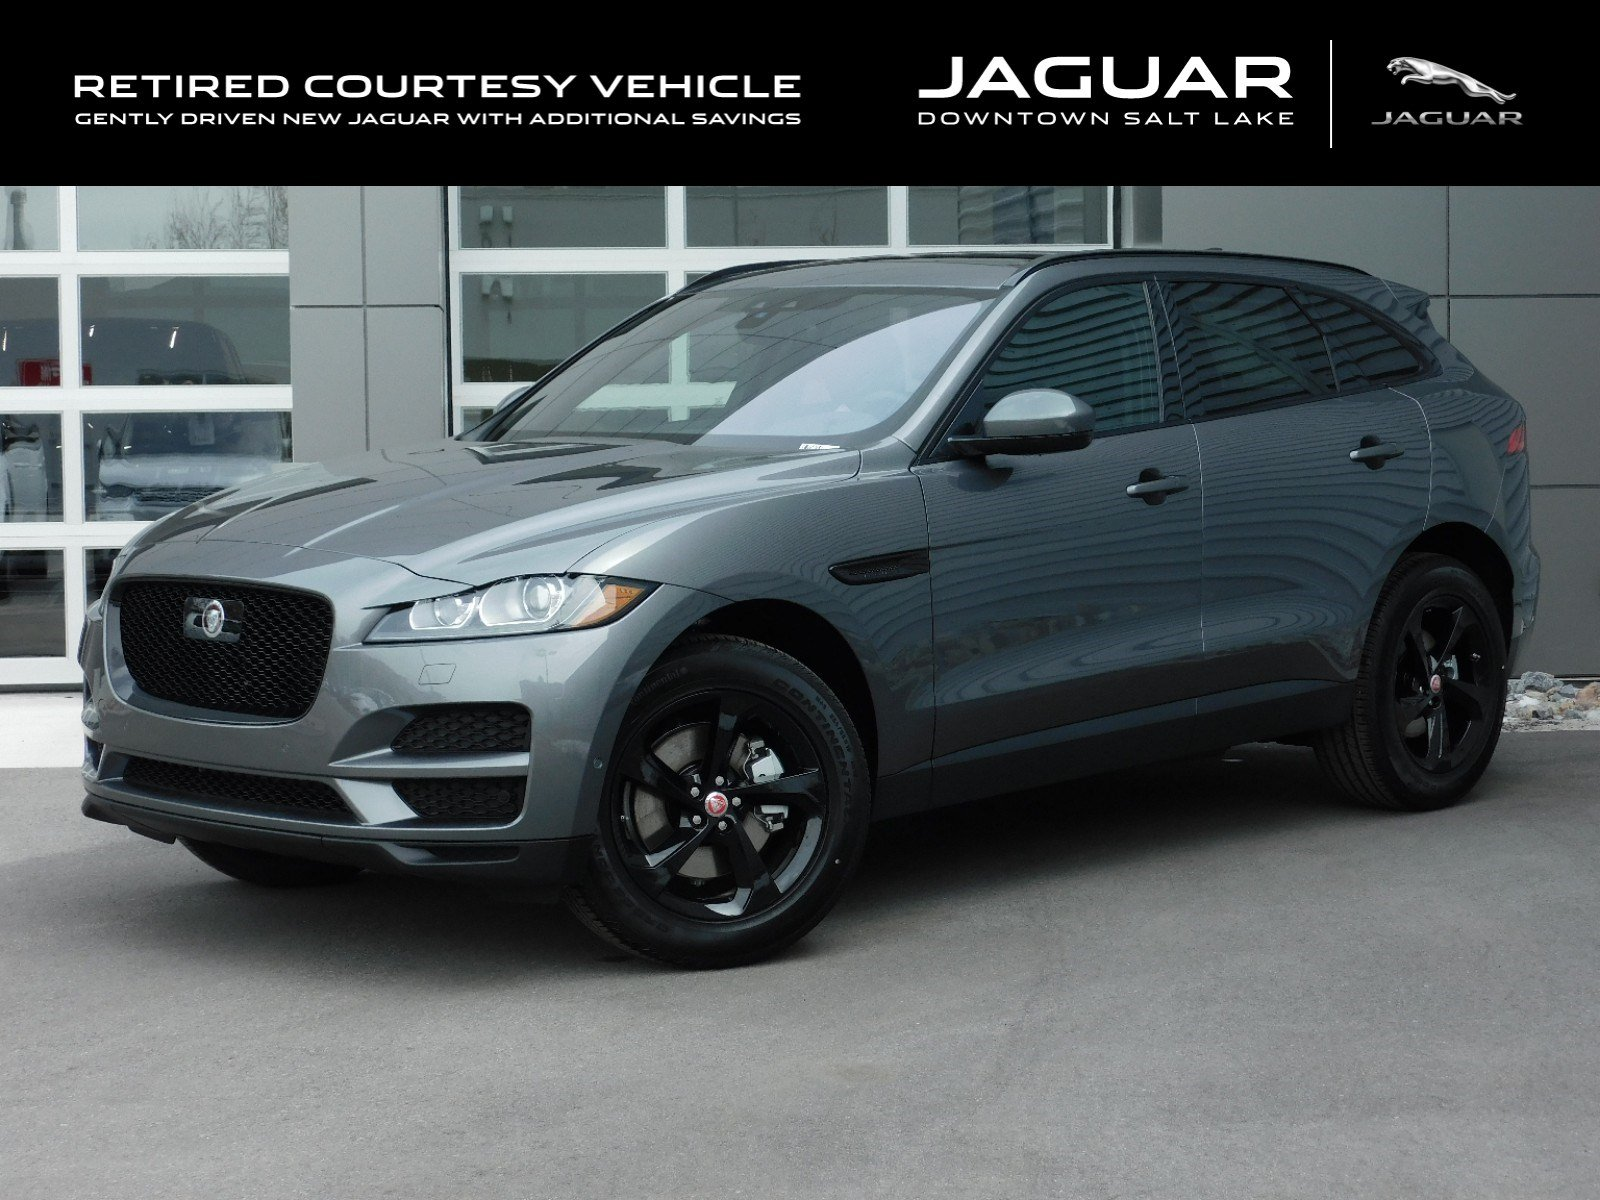 New 2019 Jaguar F-PACE WAGON 4 DOOR